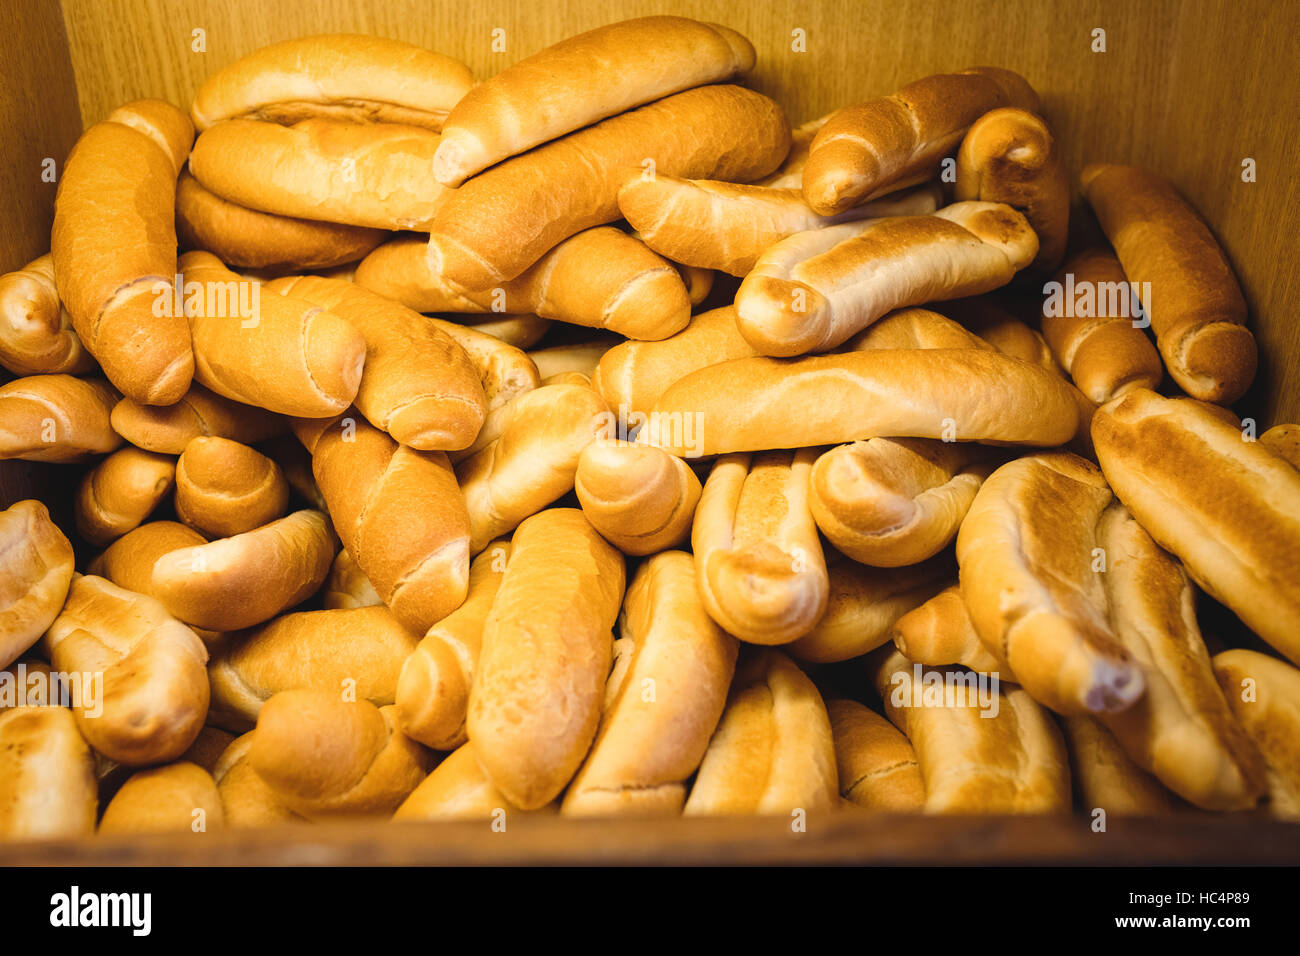 Loaf of breads in abundant - Stock Image